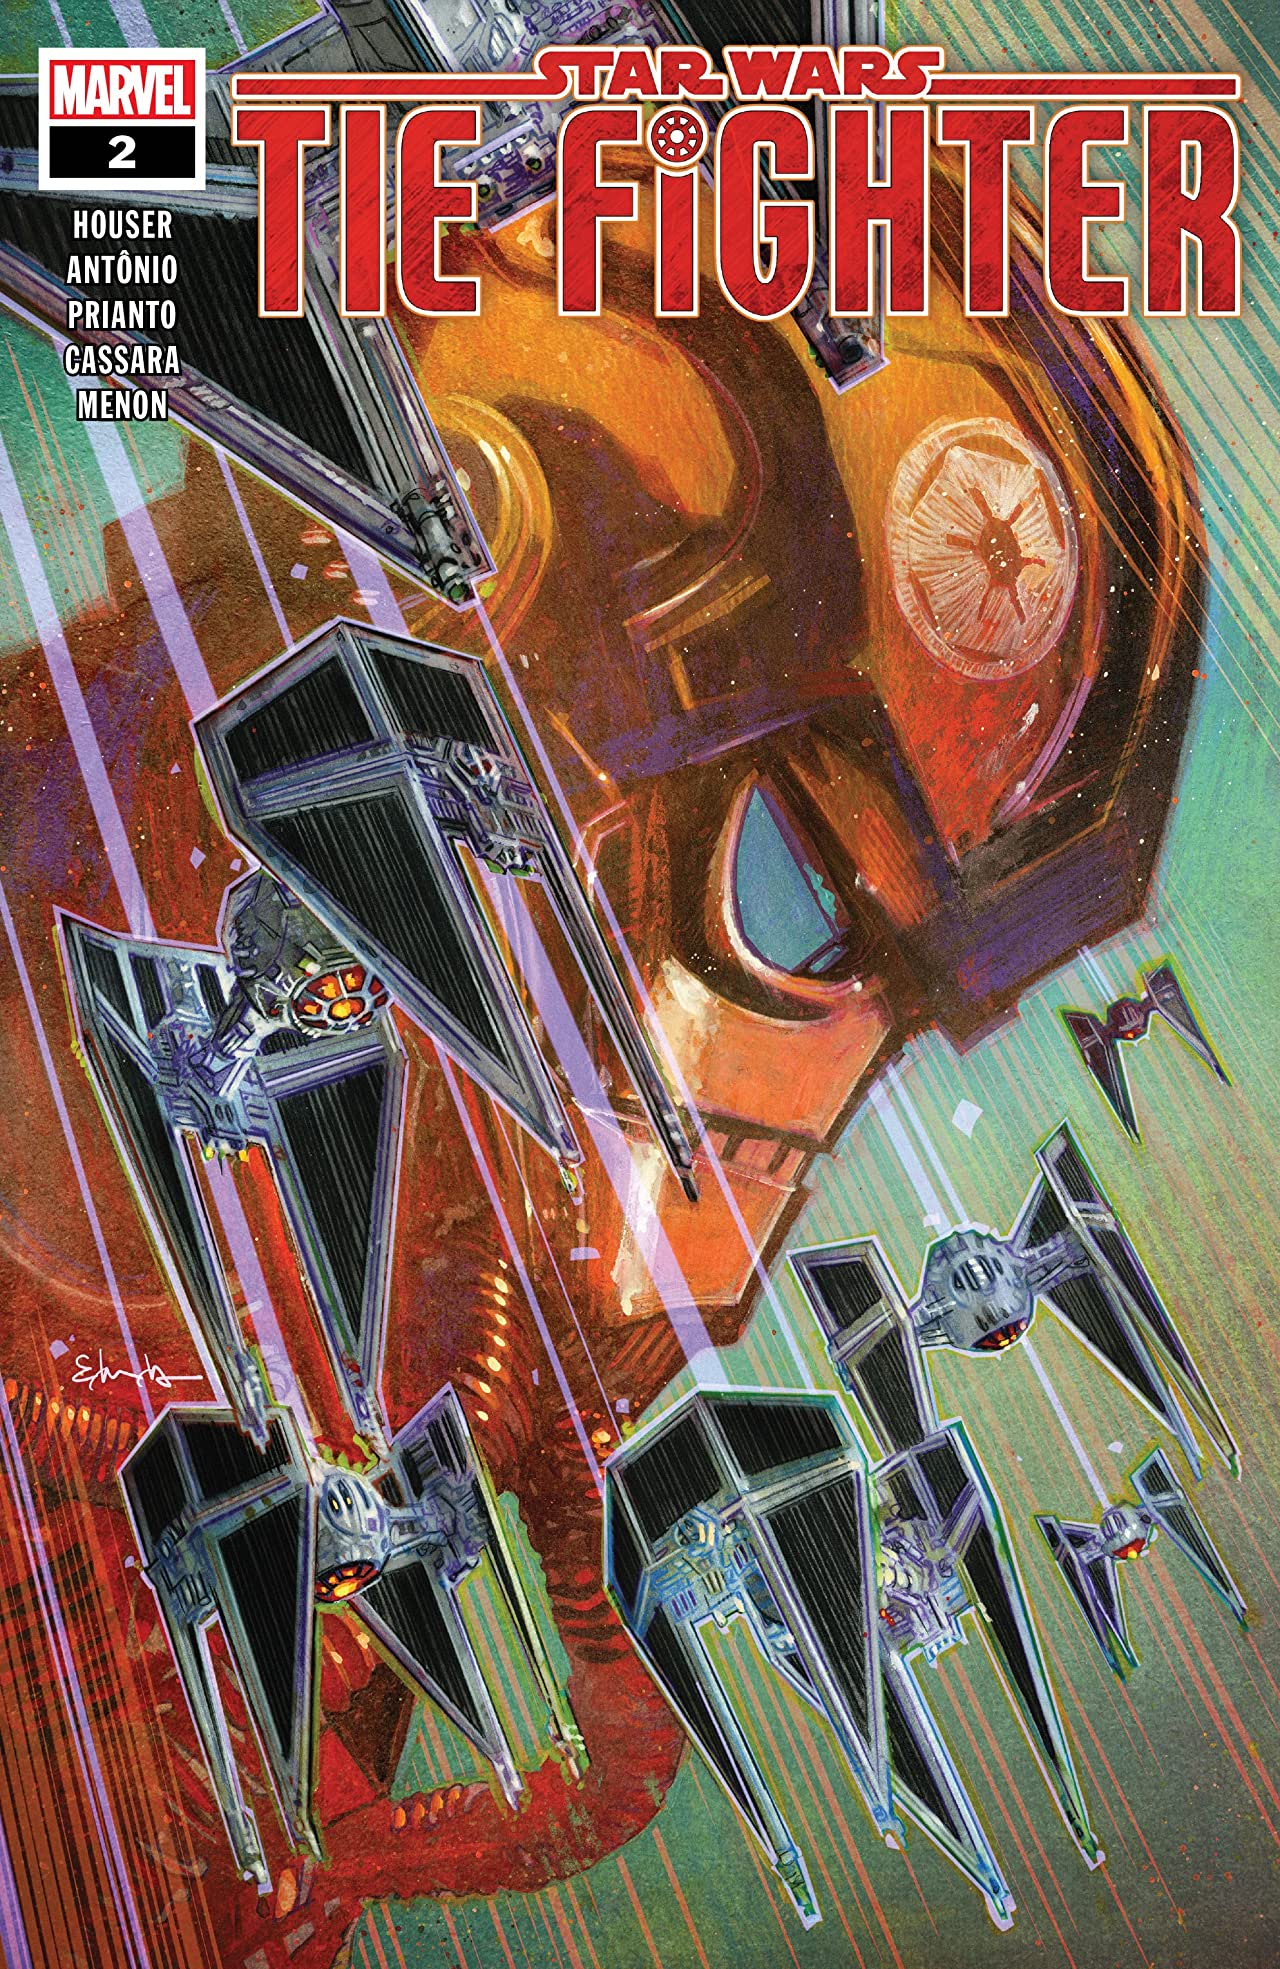 Star Wars: Tie Fighter (2019) #2 (of 5)